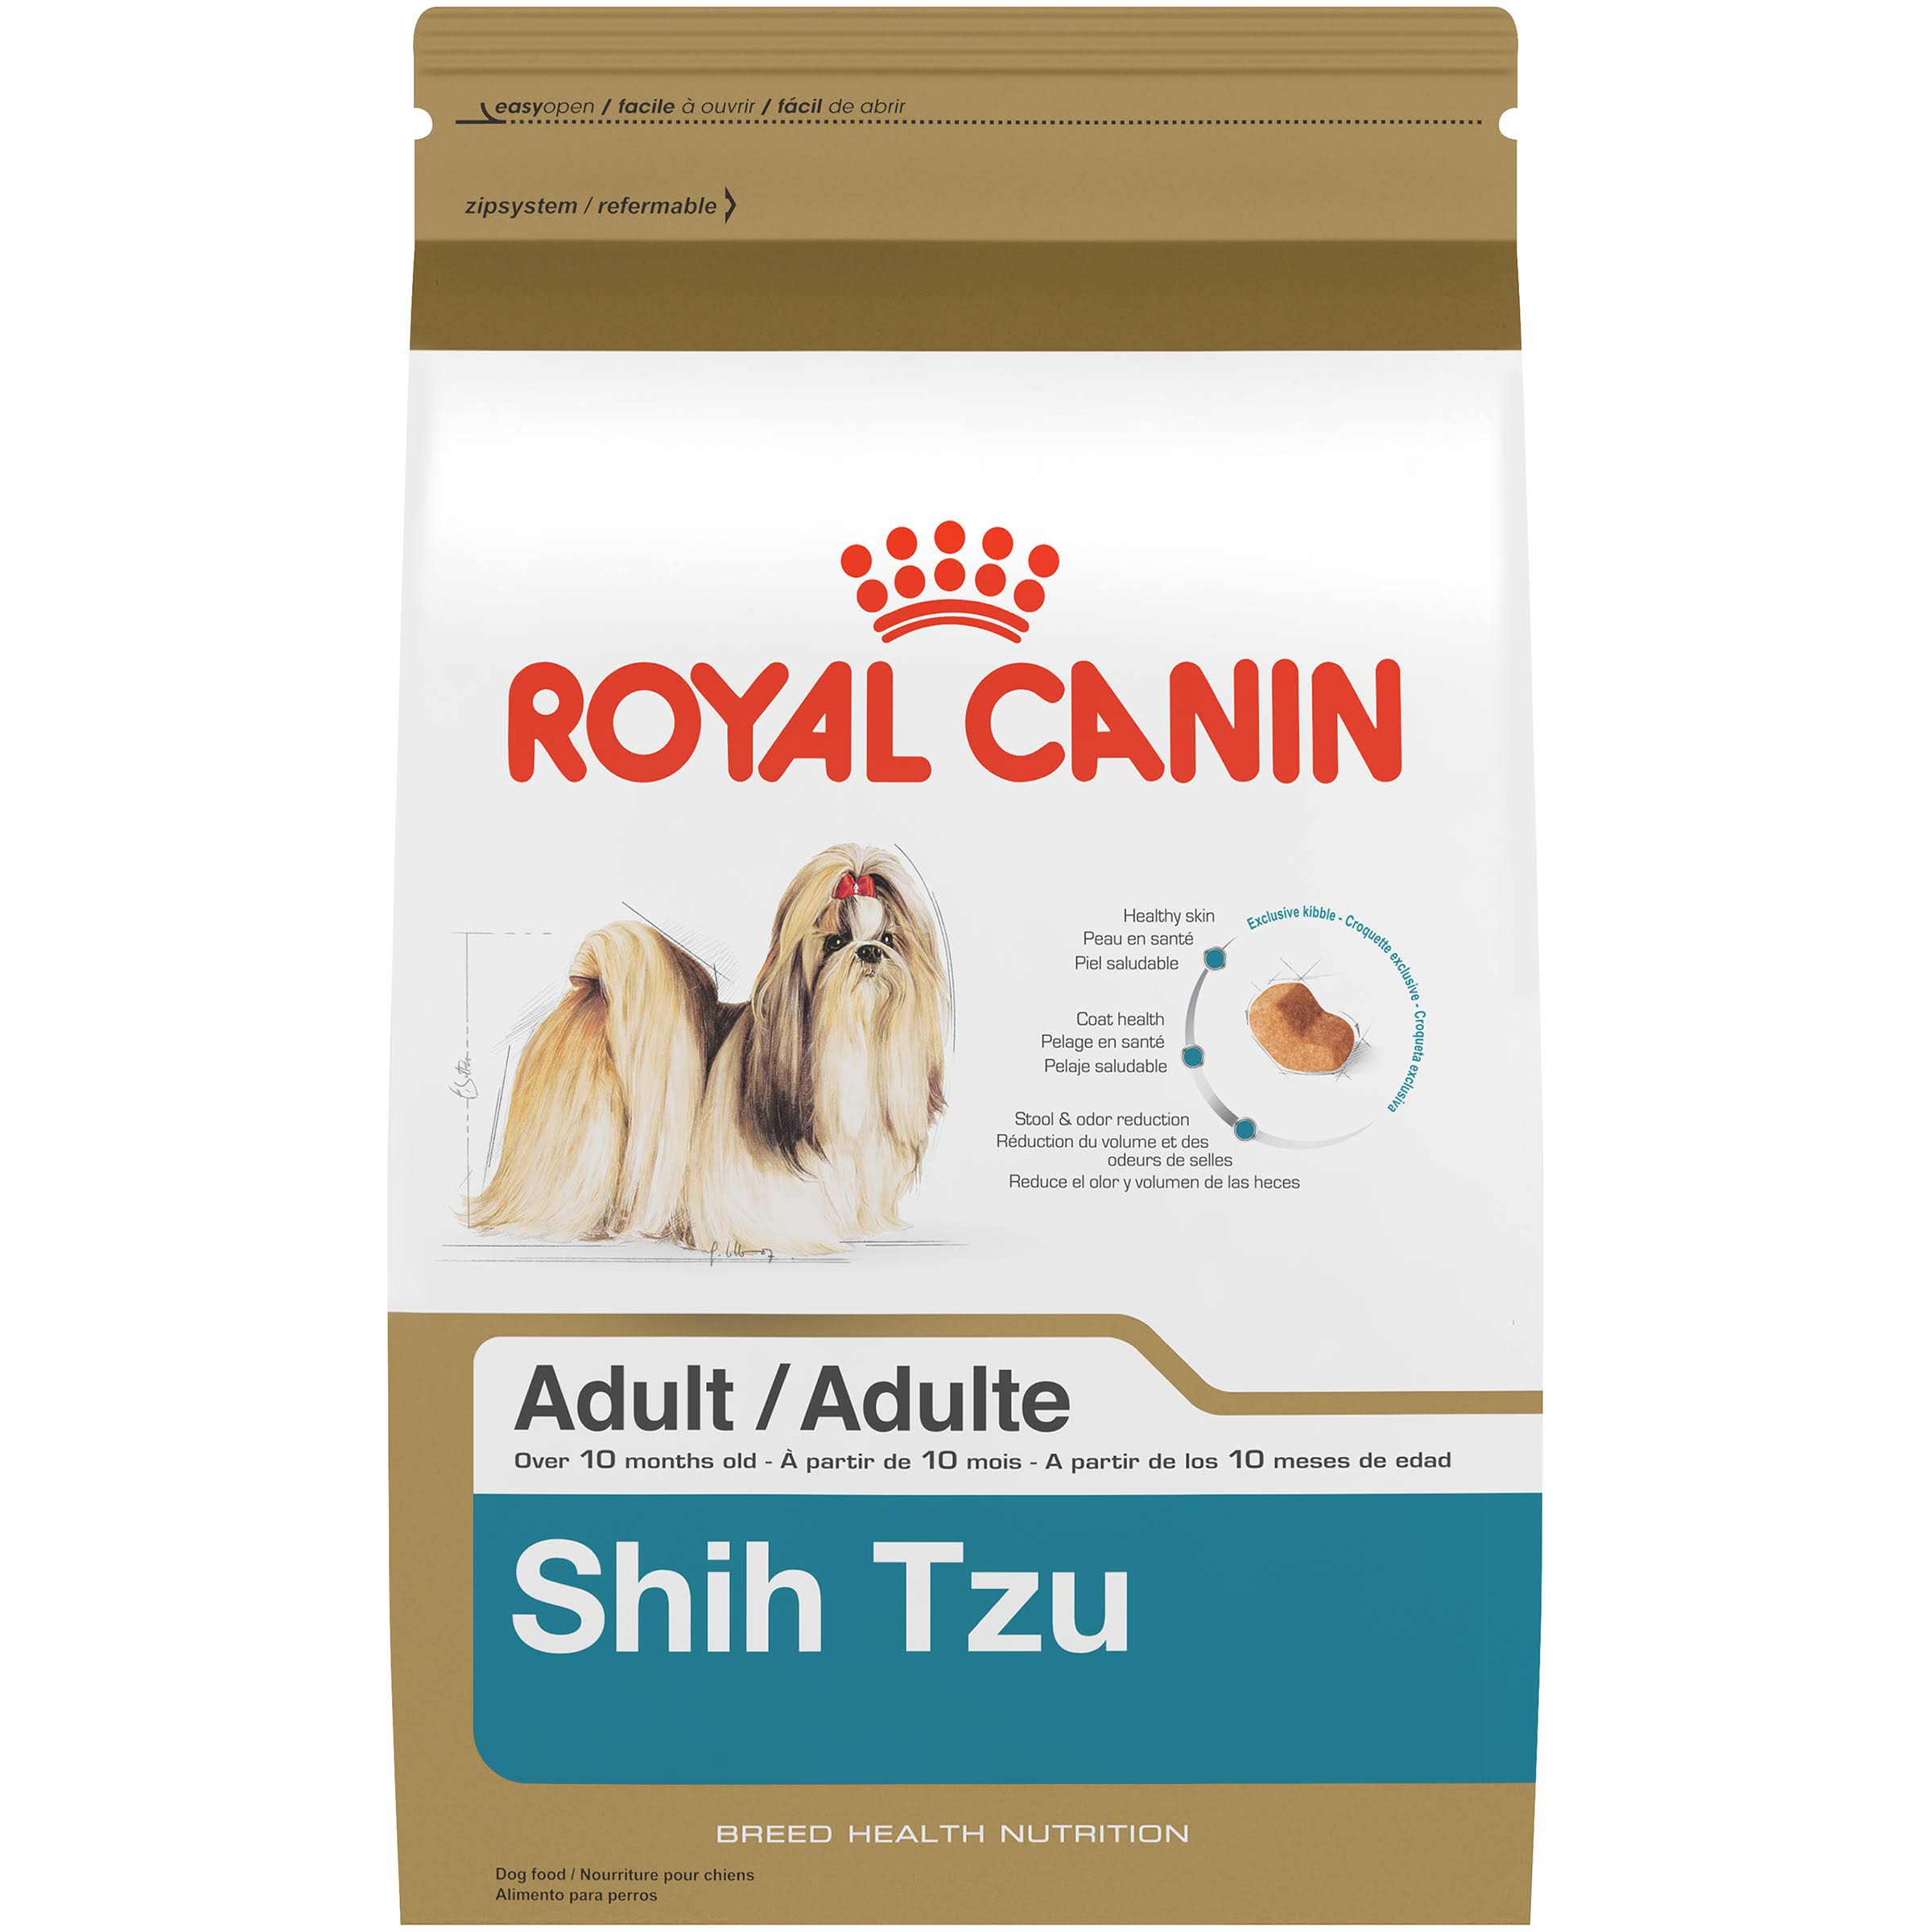 Royal Canin Dry Dog Food - Shih Tzu 24 Formula, 2.5lbs